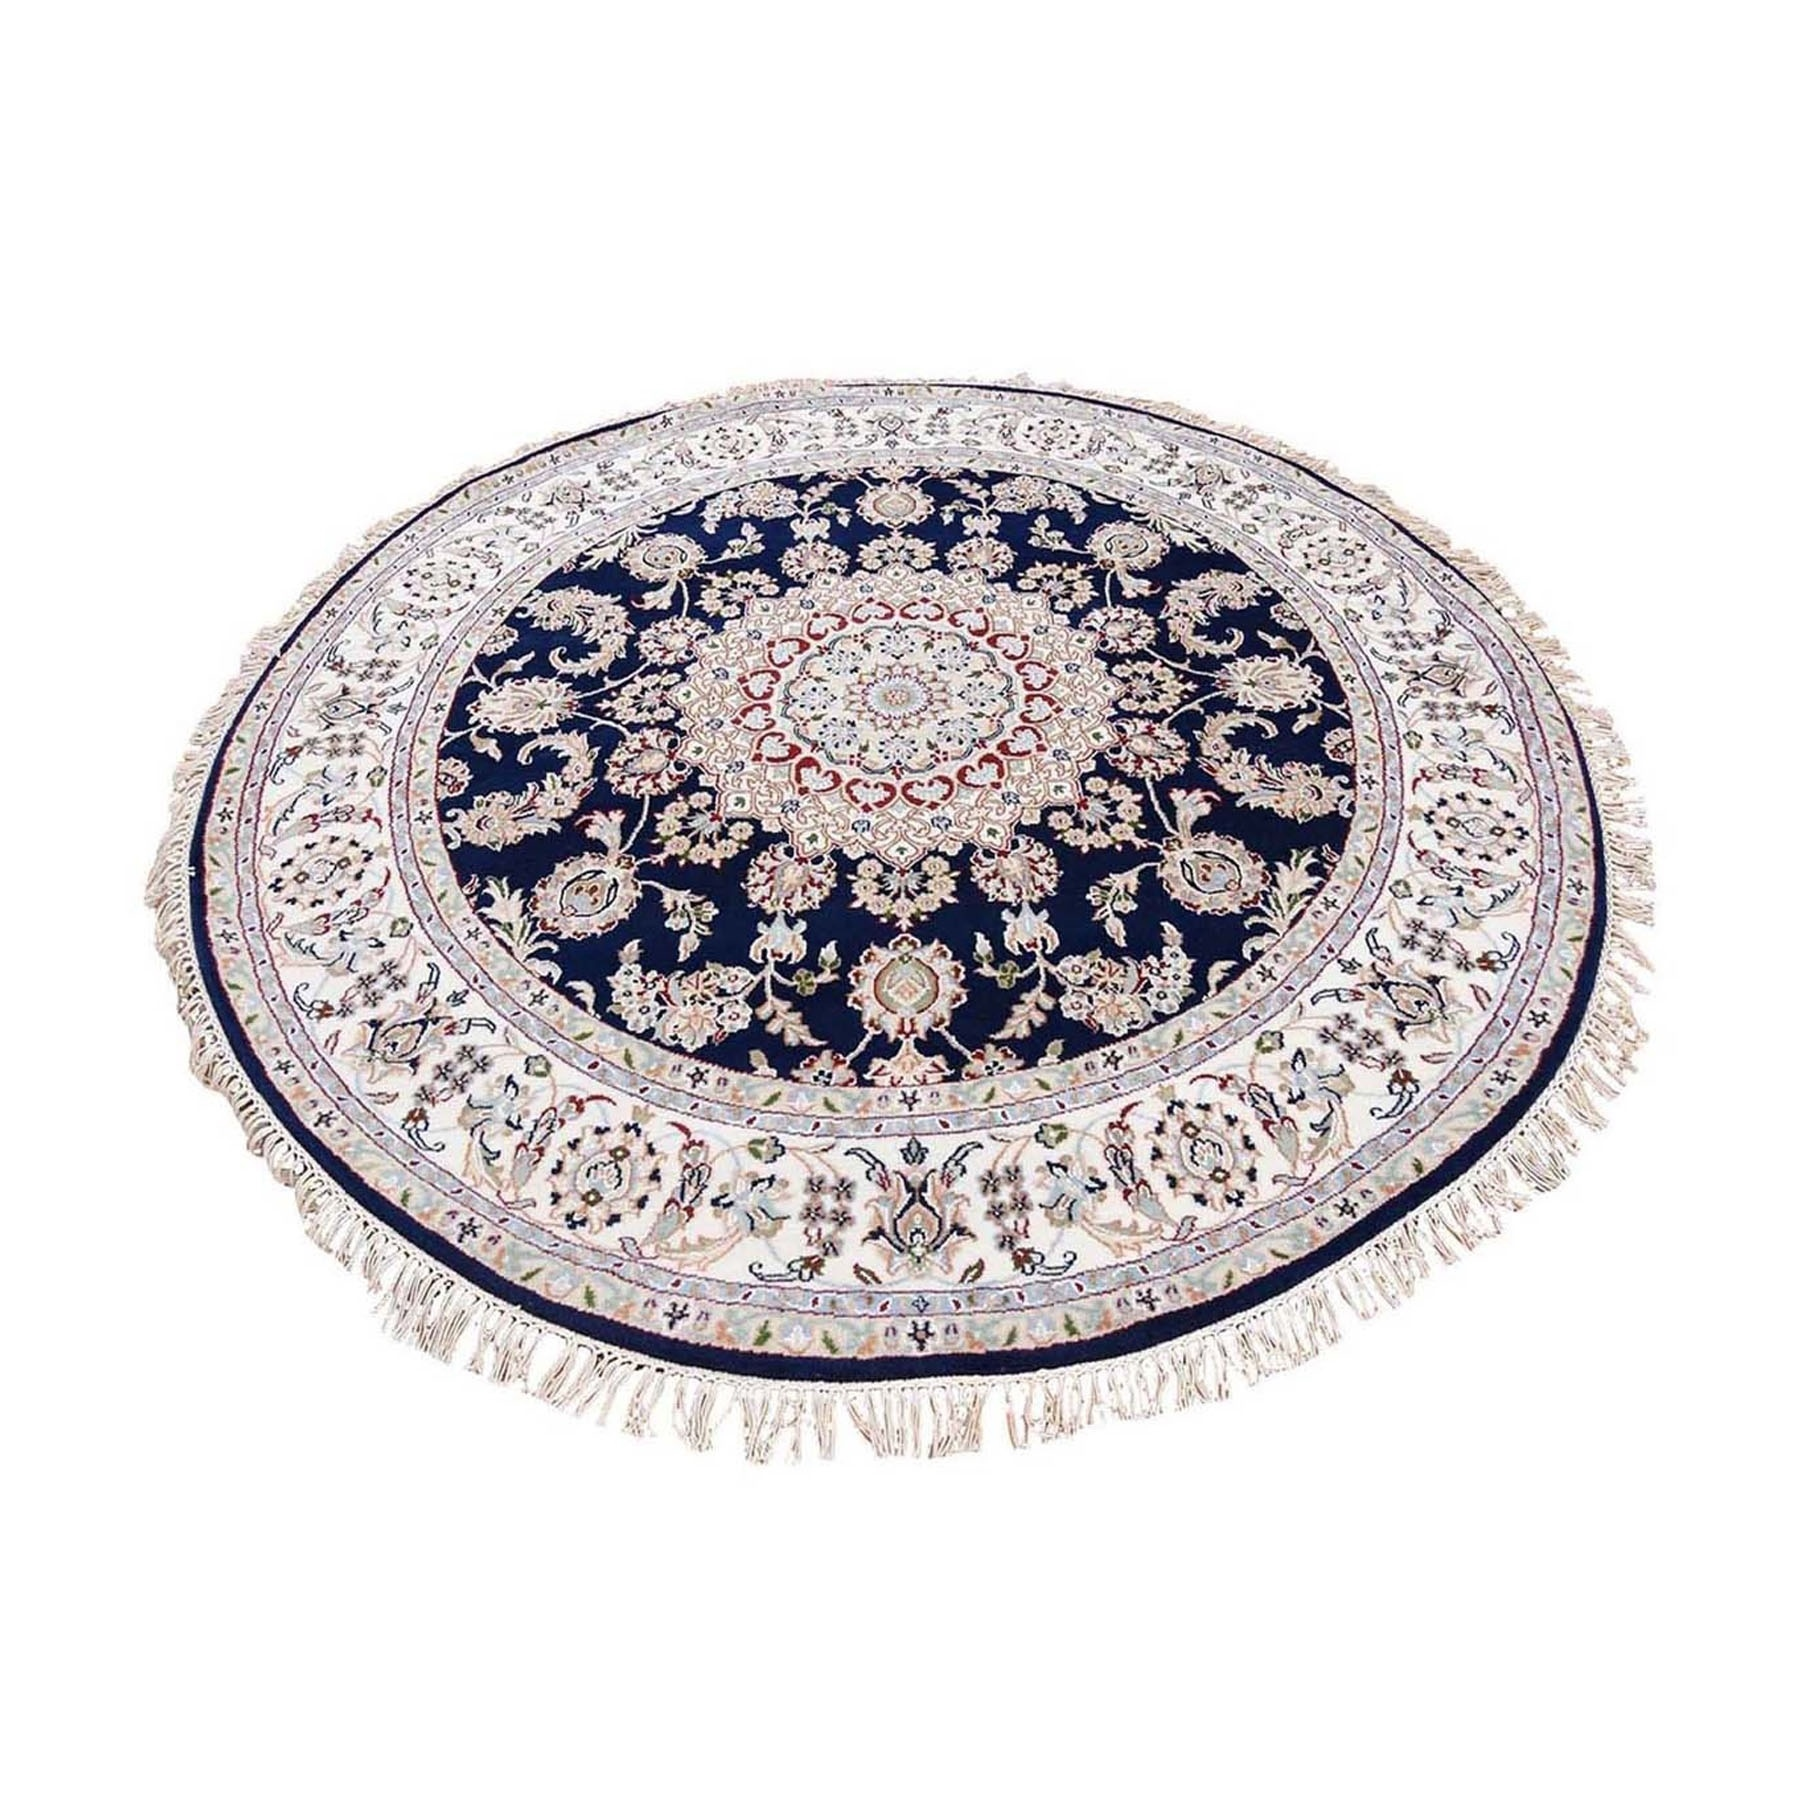 Pirniakan Collection Hand Knotted Blue Rug No: 1132452